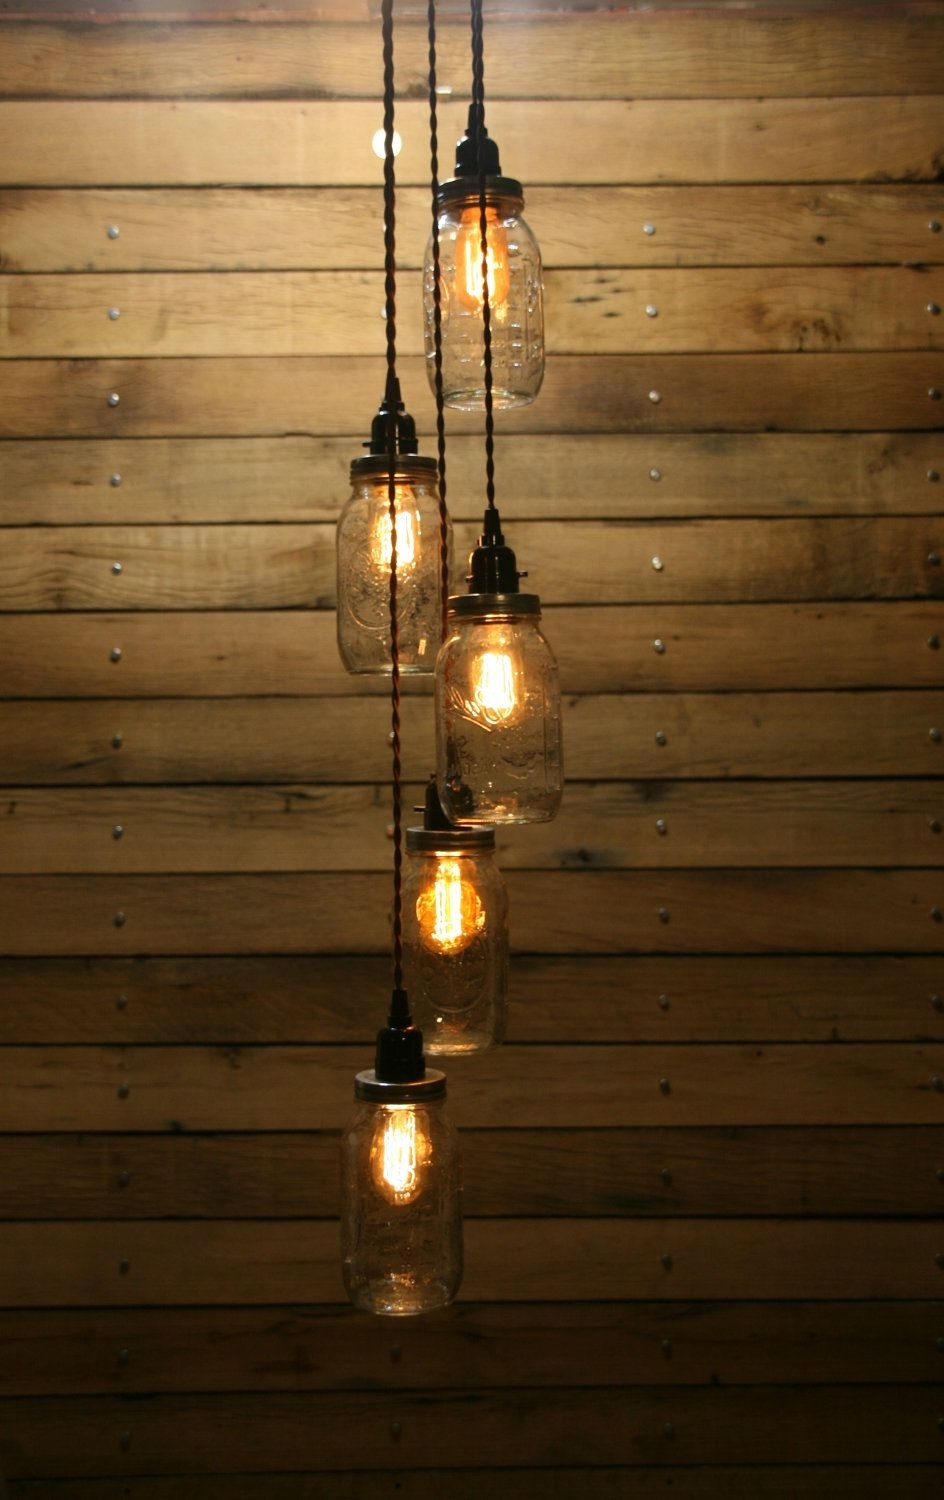 5 Jar Pendant Light – Mason Jar Chandelier Light – Staggered Length For 2018 Diy Outdoor Hanging Lights (View 8 of 20)